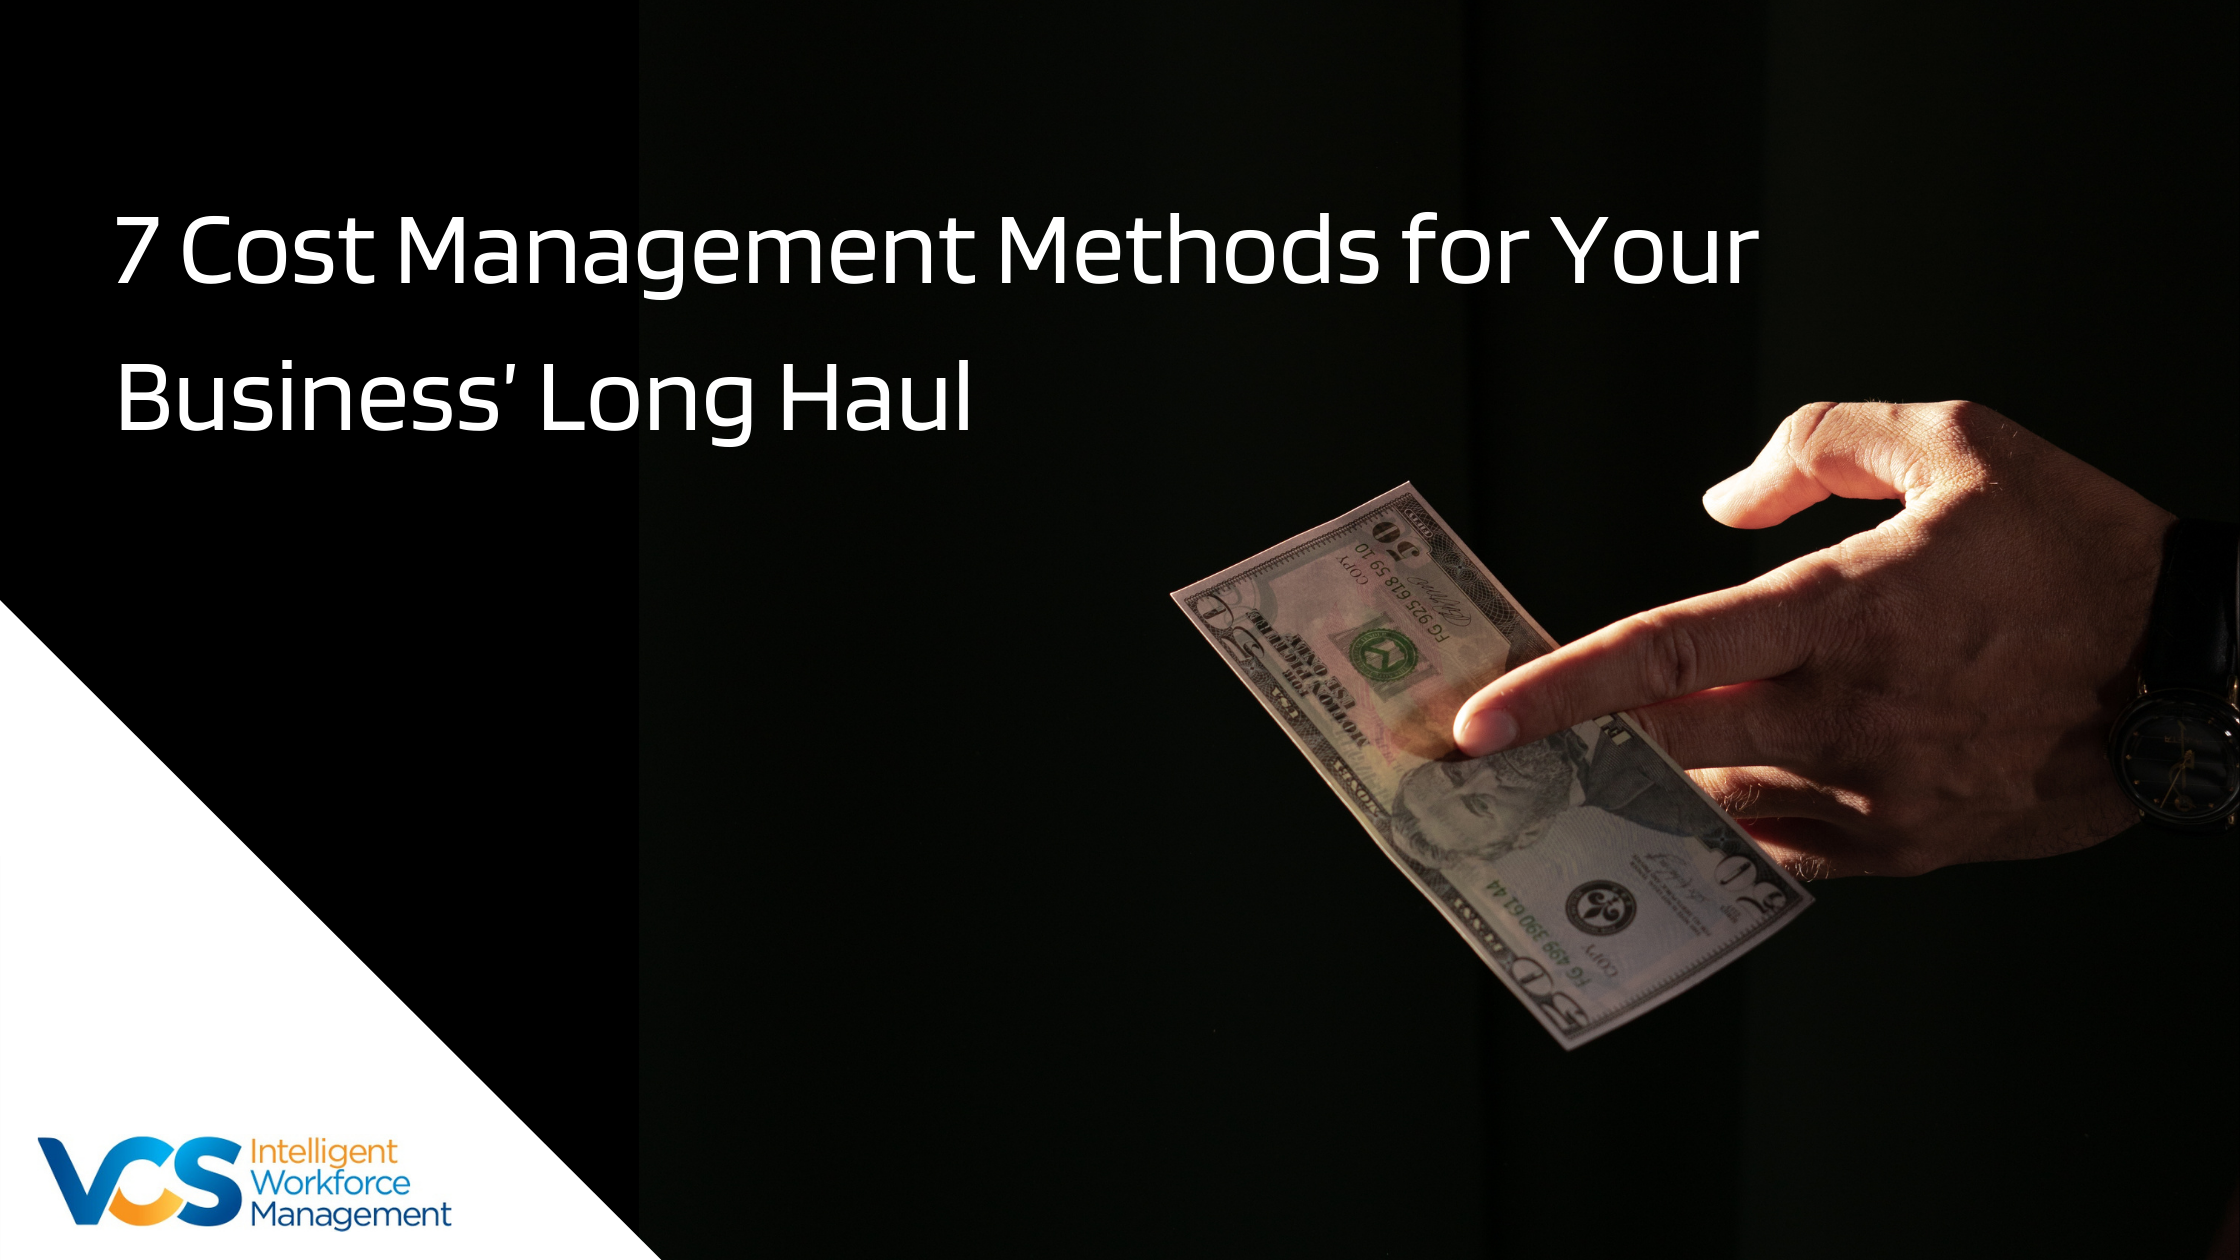 7 Cost Management Methods for Your Business' Long Haul copy